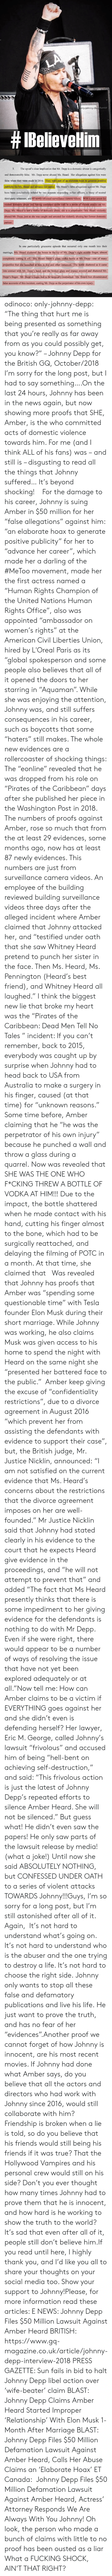 "Proofs: tumblr  nly-johnny-dep  # Believe!im   3. The op-ed's clear implication that Mr. Depp is a domestic abuser is categorically  and demonstrably false. Mr. Depp never abused Ms. Heard. Her allegations against him were  false when they were made in 2016. They were part of an elaborate hoax to generate positive  publicity for Ms. Heard and advance her career. Ms. Heard's false allegations against Mr. Depp  have benconclusivlrfed by two pndng polie offices, a litany of neutral  third-party witnesses, and 87 newly obtained surveillance camera videos. With a prior arrest for  violent domestic abuse and having confessed under oath to a series of violent attacks on Mr.  Depp, Ms. Heard is not a victim of domestic abuse; she is a perpetrator. Ms. Heard violently  abused Mr. Depp, just as she was caught and arrested for violently abusing her former domestic  artner.   In one particularly gruesome episode that occurred only one month into their  marriage, Ms. Heard shattered the bones in the tip of Mr. Depp's right middle finger, almost  completely cutting it off. Ms. Heard threw a glass vodka bottle at Mr. Depp-one of many  projectiles that she launched at him in this and other instances. The bottle shattered as it came  into contact with Mr. Depp's hand, and the broken glass and impact severed and shattered Mr.  Depp's finger. Mr. Depp's finger had to be surgically reattached. Ms. Heard then disseminated  false accounts of this incident, casting Mr. Depp as the perpetrator of his own injury odinoco:  only-johnny-depp:  ""The thing that hurt me is being presented as something that you're really as far away from as you could possibly get, you know?"" – Johnny Depp for the British GQ, October/2018 I'm sorry for the long post, but I had to say something….On the last 24 hours, Johnny has been in the news again, but now showing more proofs that SHE, Amber, is the who committed acts of domestic violence towards him. For me (and I think ALL of his fans) was – and still is – disgusting to read all the things that Johnny suffered… It's beyond shocking!    For the damage to his career, Johnny is suing Amber in $50 million for her ""false allegations"" against him: ""an elaborate hoax to generate positive publicity"" for her to ""advance her career"", which made her a darling of the #MeToo movement, made her the first actress named a ""Human Rights Champion of the United Nations Human Rights Office"", also was appointed ""ambassador on women's rights"" at the American Civil Liberties Union, hired by L'Oreal Paris as its ""global spokesperson and some people also believes that all of it opened the doors to her starring in ""Aquaman"". While she was enjoying the attention, Johnny was, and still suffers consequences in his career, such as boycotts that some ""haters"" still makes. The whole new evidences are a rollercoaster of shocking things:     The ""eonline"" revealed that he was dropped from his role on ""Pirates of the Caribbean"" days after she published her piece in the Washington Post in 2018.    The numbers of proofs against Amber, rose so much that from the at least 29 evidences, some months ago, now has at least 87 newly evidences. This numbers are just from surveillance camera videos.    An employee of the building reviewed building surveillance videos three days after the alleged incident where Amber claimed that Johnny attacked her, and ""testified under oath that she saw Whitney Heard pretend to punch her sister in the face. Then Ms. Heard, Ms. Pennington (Heard's best friend), and Whitney Heard all laughed.""   I think the biggest new lie that broke my heart was the ""Pirates of the Caribbean: Dead Men Tell No Tales  "" incident: If you can't remember, back to 2015, everybody was caught up by surprise when Johnny had to head back to USA from Australia to make a surgery in his finger, caused (at that time) for ""unknown reasons."" Some time before, Amber   claiming that he   ""he was the perpetrator of his own injury"" because he punched a wall and throw a glass during a quarrel. Now was revealed that SHE WAS THE ONE WHO F*CKING THREW A BOTTLE OF VODKA AT HIM!!! Due to the impact, the bottle shattered when he made contact with his hand, cutting his finger almost to the bone, which had to be surgically reattached, and delaying the filming of POTC in a month. At that time, she claimed that        Was revealed that Johnny has proofs that Amber was ""spending some questionable time"" with Tesla founder Elon Musk during their short marriage. While Johnny was working, he also claims Musk was given access to his home to spend the night with Heard on the same night she ""presented her battered face to the public.""   Amber keep giving the excuse of ""confidentiality restrictions"", due to a divorce agreement in August 2016 ""which prevent her from assisting the defendants with evidence to support their case"", but, the British judge, Mr. Justice Nicklin, announced: ""I am not satisfied on the current evidence that Ms. Heard's concerns about the restrictions that the divorce agreement imposes on her are well-founded."" Mr Justice Nicklin said that Johnny had stated clearly in his evidence to the court that he expects Heard give evidence in the proceedings, and ""he will not attempt to prevent that"" and added ""The fact that Ms Heard presently thinks that there is some impediment to her giving evidence for the defendants is nothing to do with Mr Depp. Even if she were right, there would appear to be a number of ways of resolving the issue that have not yet been explored adequately or at all.""Now tell me: How can Amber claims to be a victim if EVERYTHING goes against her and she didn't even is defending herself? Her lawyer, Eric M. George, called Johnny's lawsuit ""frivolous"" and accused him of being ""hell-bent on achieving self-destruction,"" and said: ""This frivolous action is just the latest of Johnny Depp's repeated efforts to silence Amber Heard. She will not be silenced."" But guess what! He didn't even saw the papers! He only saw parts of the lawsuit release by media! (what a joke!) Until now she said ABSOLUTELY NOTHING, but CONFESSED UNDER OATH to a series of violent attacks TOWARDS Johnny!!!Guys, I'm so sorry for a long post, but I'm still astonished after all of it. Again,   It's not hard to understand what's going on. It's not hard to understand who is the abuser and the one trying to destroy a life. It's not hard to choose the right side.   Johnny only wants to stop all these false and defamatory publications and live his life. He just want to prove the truth, and has no fear of her ""evidences"".Another proof we cannot forget of how Johnny is innocent, are his most recent movies. If Johnny had done what Amber says, do you believe that all the actors and directors who had work with Johnny since 2016, would still collaborate with him? Friendship is broken when a lie is told, so do you believe that his friends would still being his friends if it was true? That the Hollywood Vampires and his personal crew would still on his side? Don't you ever thought how many times Johnny had to prove them that he is innocent, and how hard is he working to show the truth to the world? It's sad that even after all of it, people still don't believe him.If you read until here, I highly thank you, and I'd like you all to share your thoughts on your social media too. Show your support to Johnny!Please, for more information read these articles: E NEWS:   Johnny Depp Files $50 Million Lawsuit Against Amber Heard       BRITISH: https://www.gq-magazine.co.uk/article/johnny-depp-interview-2018     PRESS GAZETTE:   Sun fails in bid to halt Johnny Depp libel action over 'wife-beater' claim        BLAST:   Johnny Depp Claims Amber Heard Started Improper 'Relationship' With Elon Musk 1-Month After Marriage        BLAST:   Johnny Depp Files $50 Million Defamation Lawsuit Against Amber Heard, Calls Her Abuse Claims an 'Elaborate Hoax'        ET Canada:   Johnny Depp Files $50 Million Defamation Lawsuit Against Amber Heard, Actress' Attorney Responds  We Are Always With You Johnny!   Oh look, the person who made a bunch of claims with little to no proof has been ousted as a liar What a FUCKING SHOCK, AIN'T THAT RIGHT?"